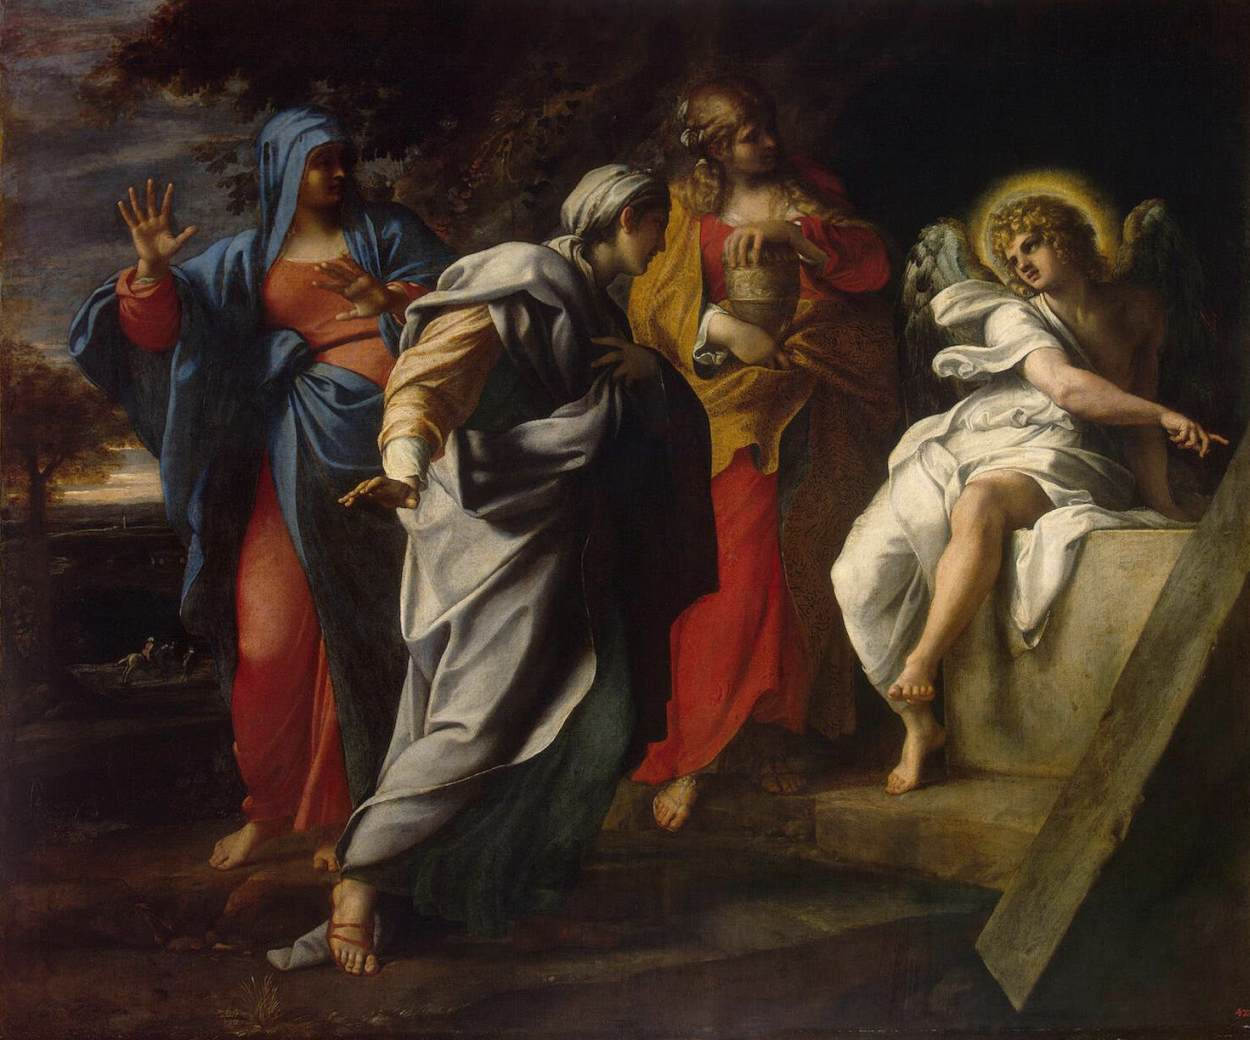 Unfinished Story? -- Sermon for Easter Sunday 2015